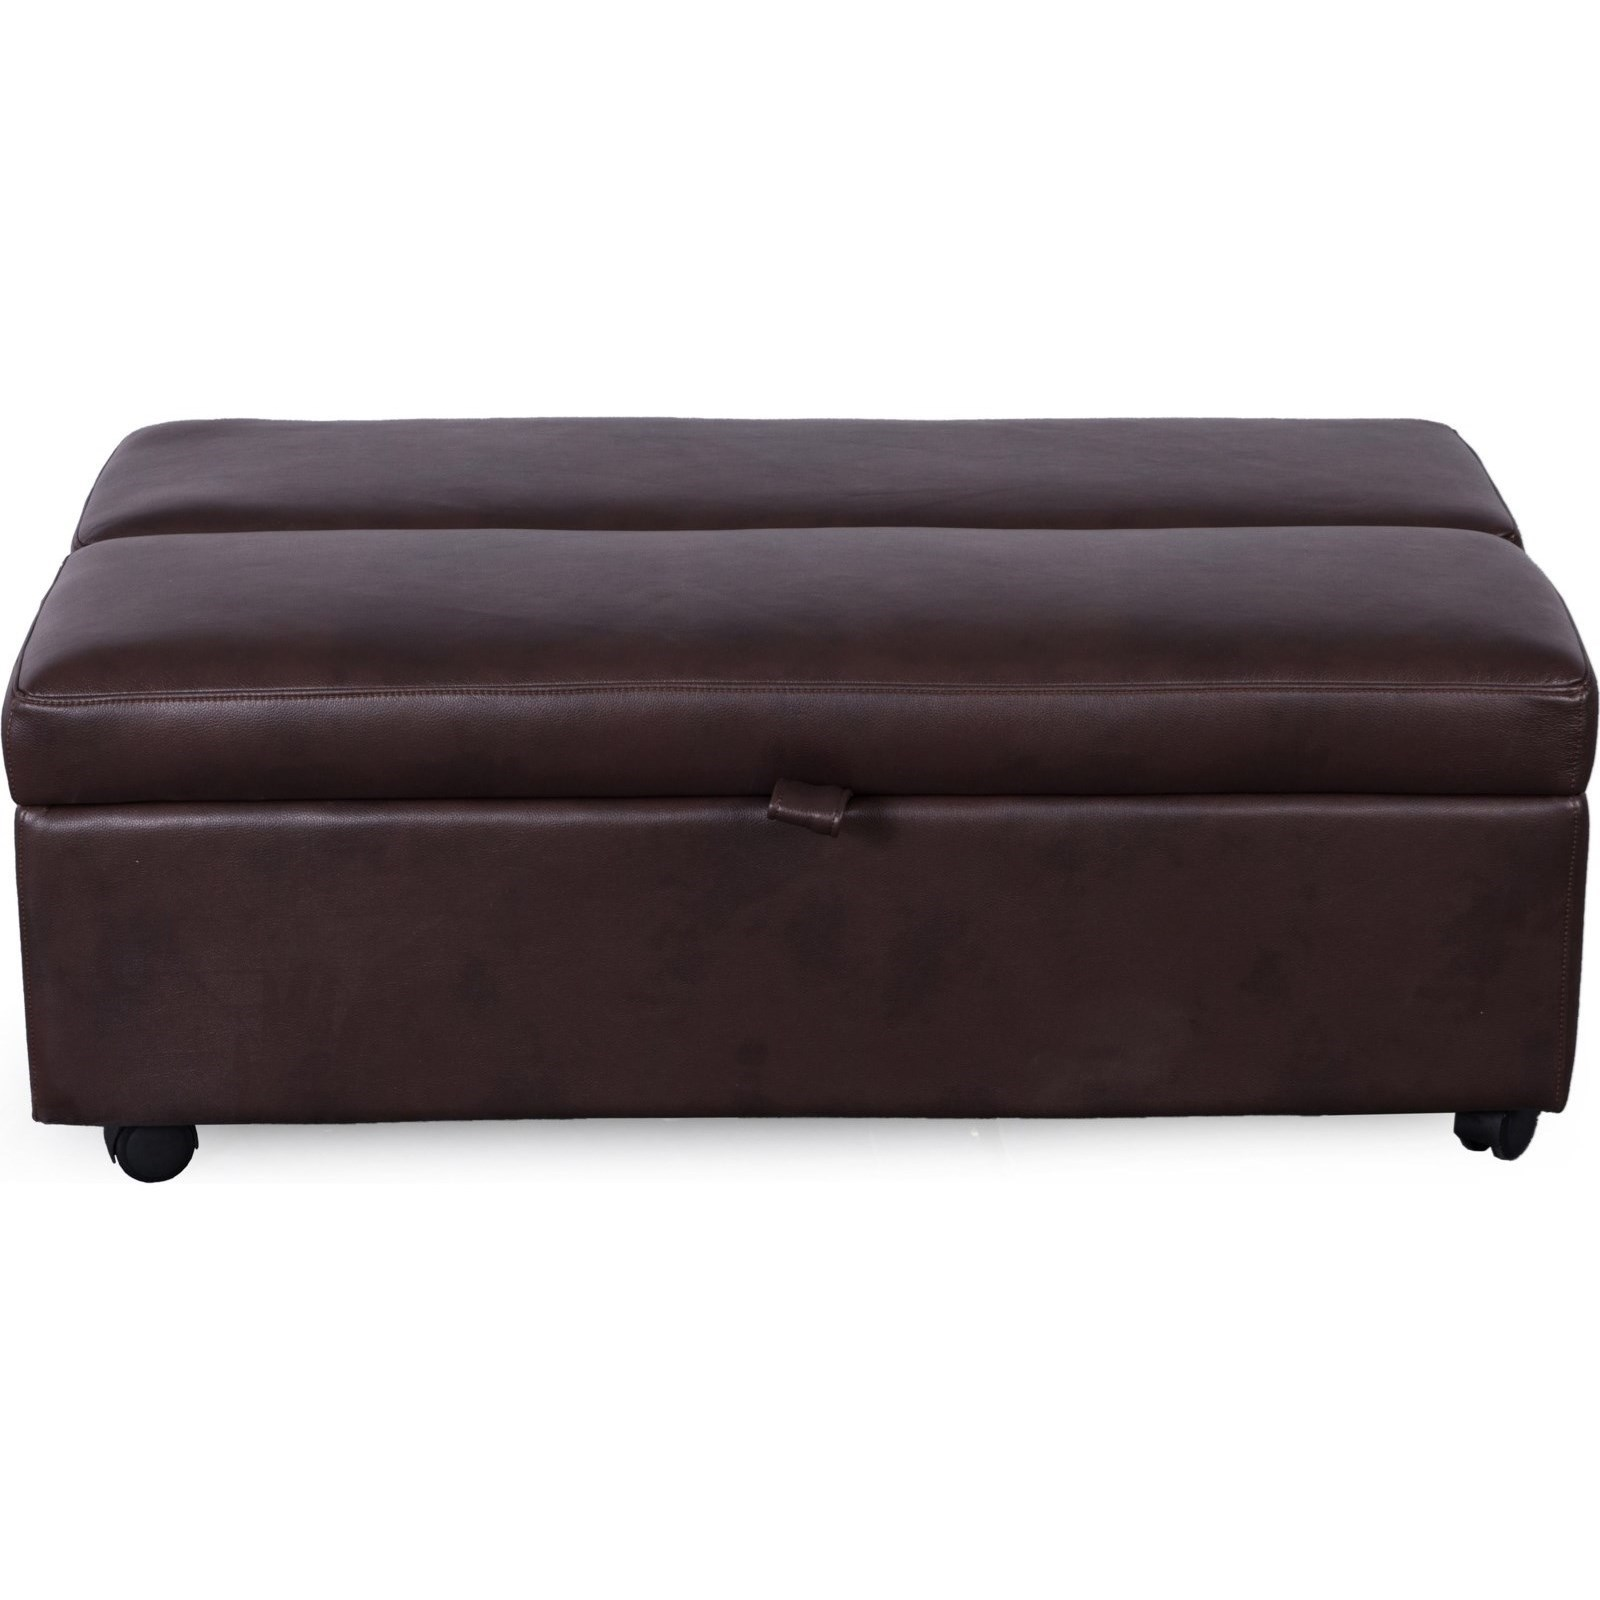 1021  Sleeper Ottoman by Synergy Home Furnishings at Johnny Janosik